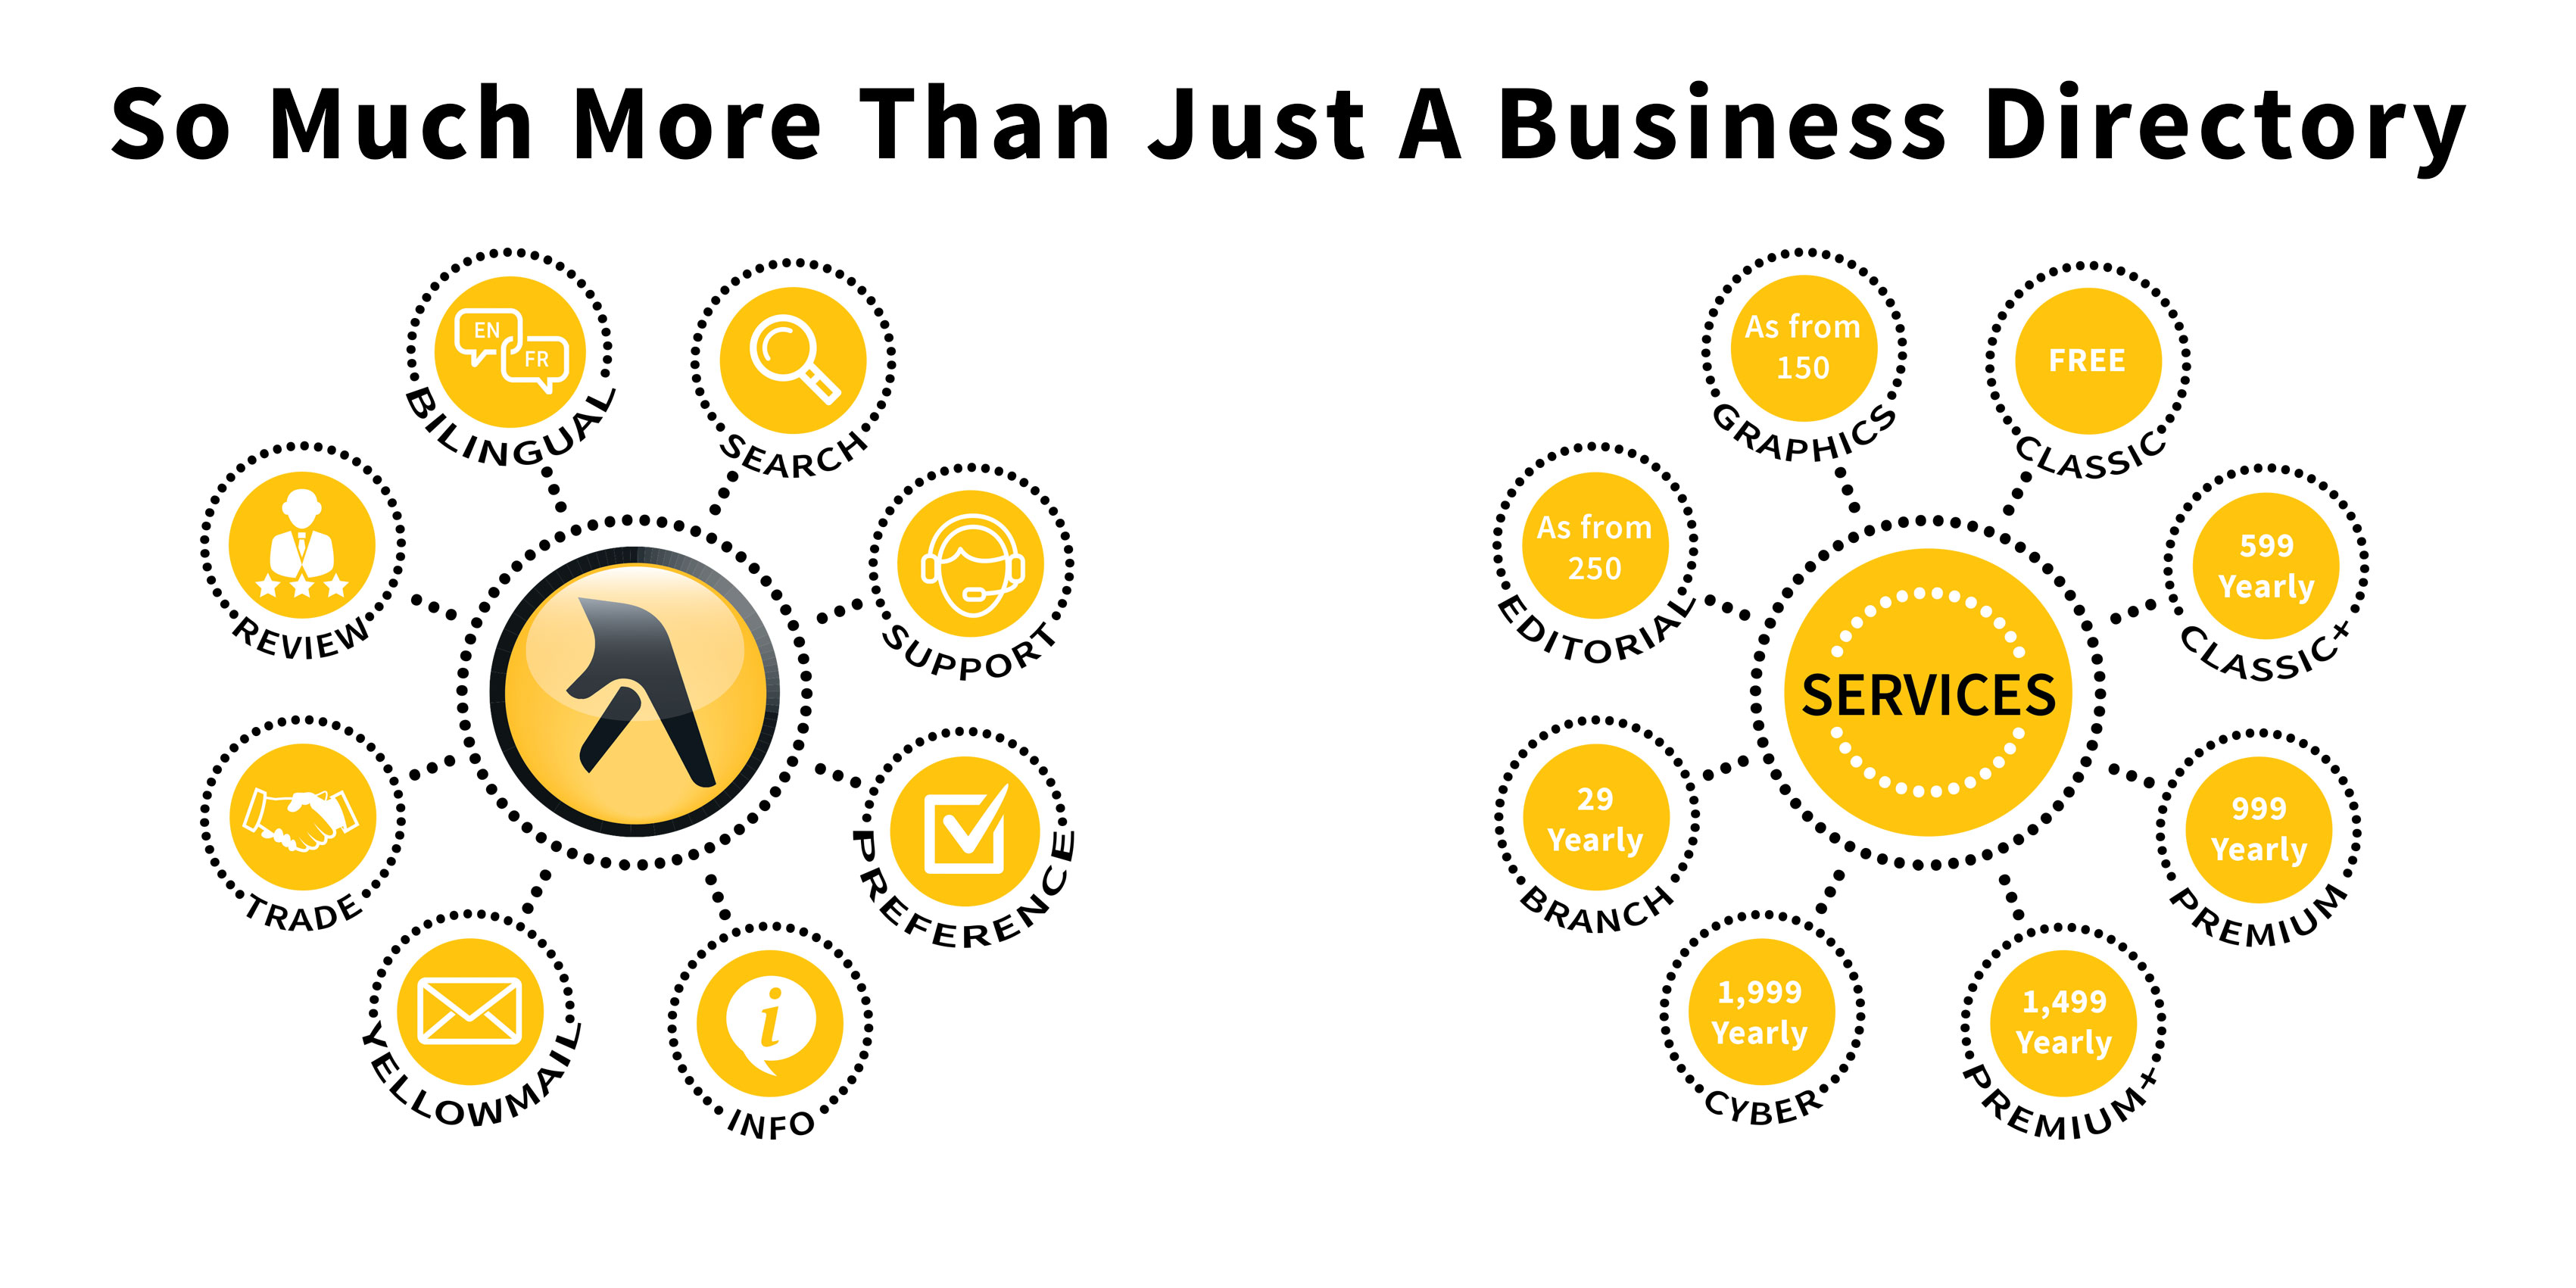 So Much More Than Just A Business Directory